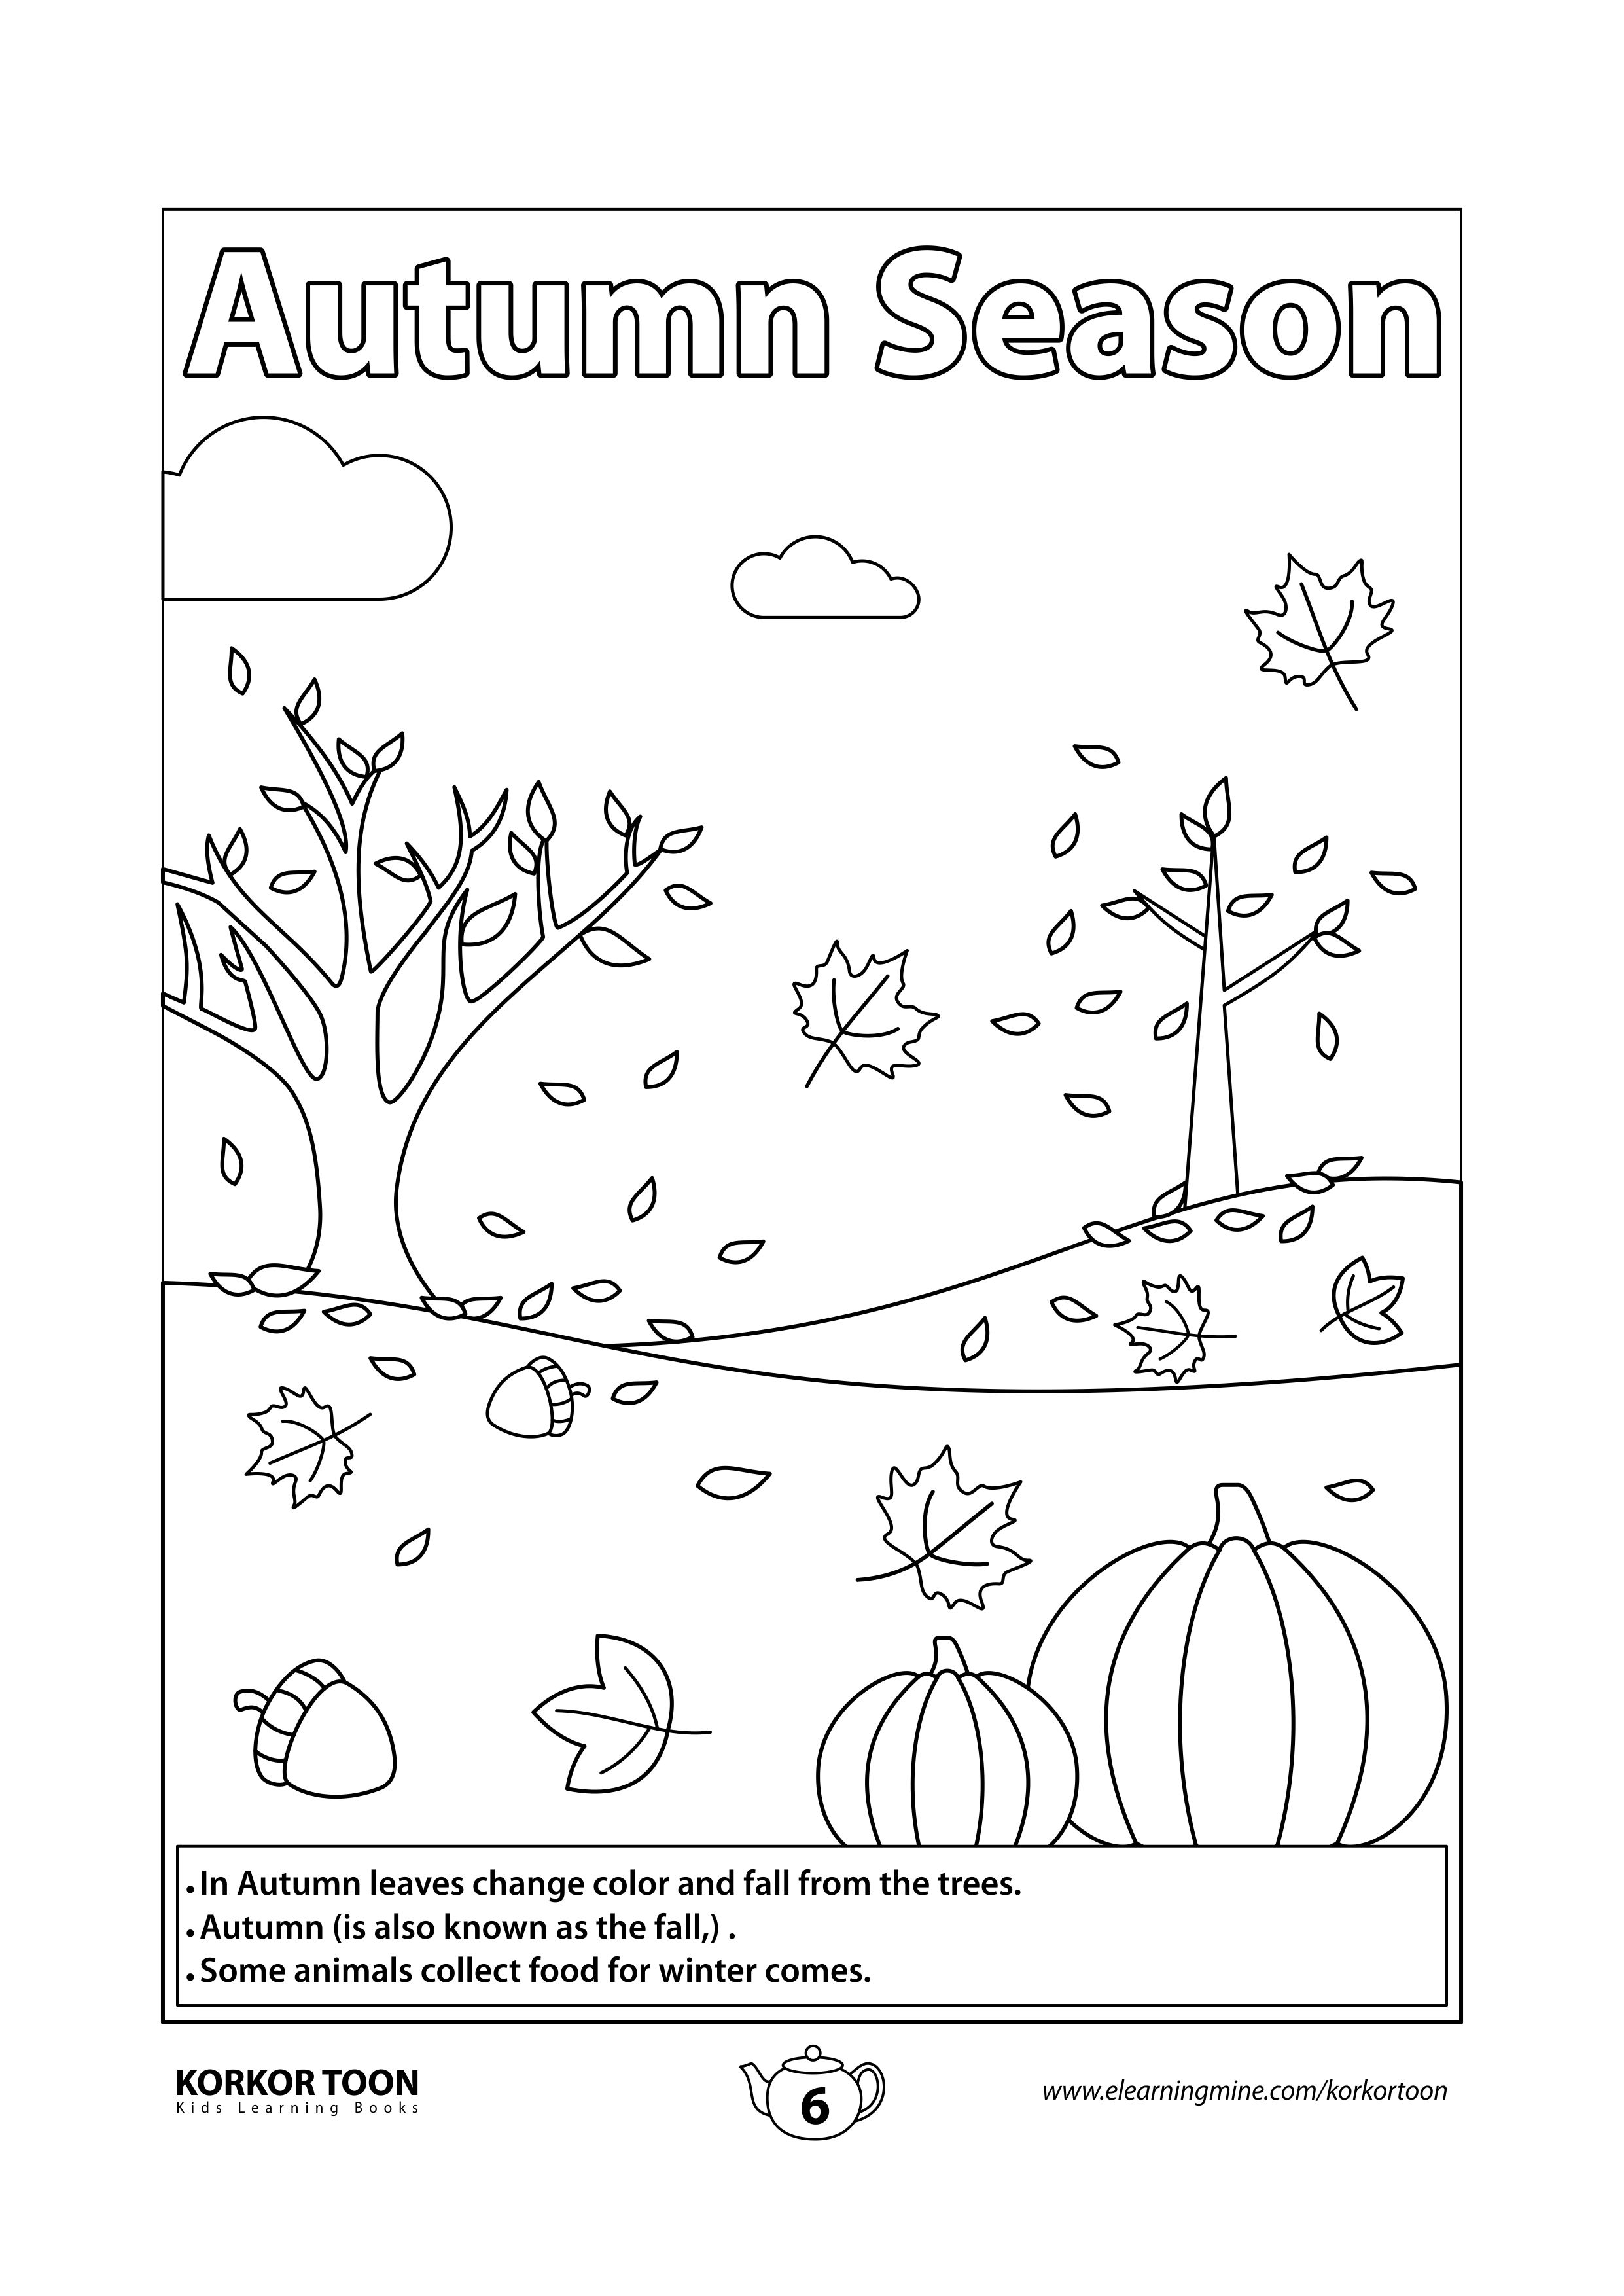 Seasons Coloring Book For Kids Autumn Season Coloring Page In 2021 Coloring Books Seasons Coloring Pages Coloring Pages